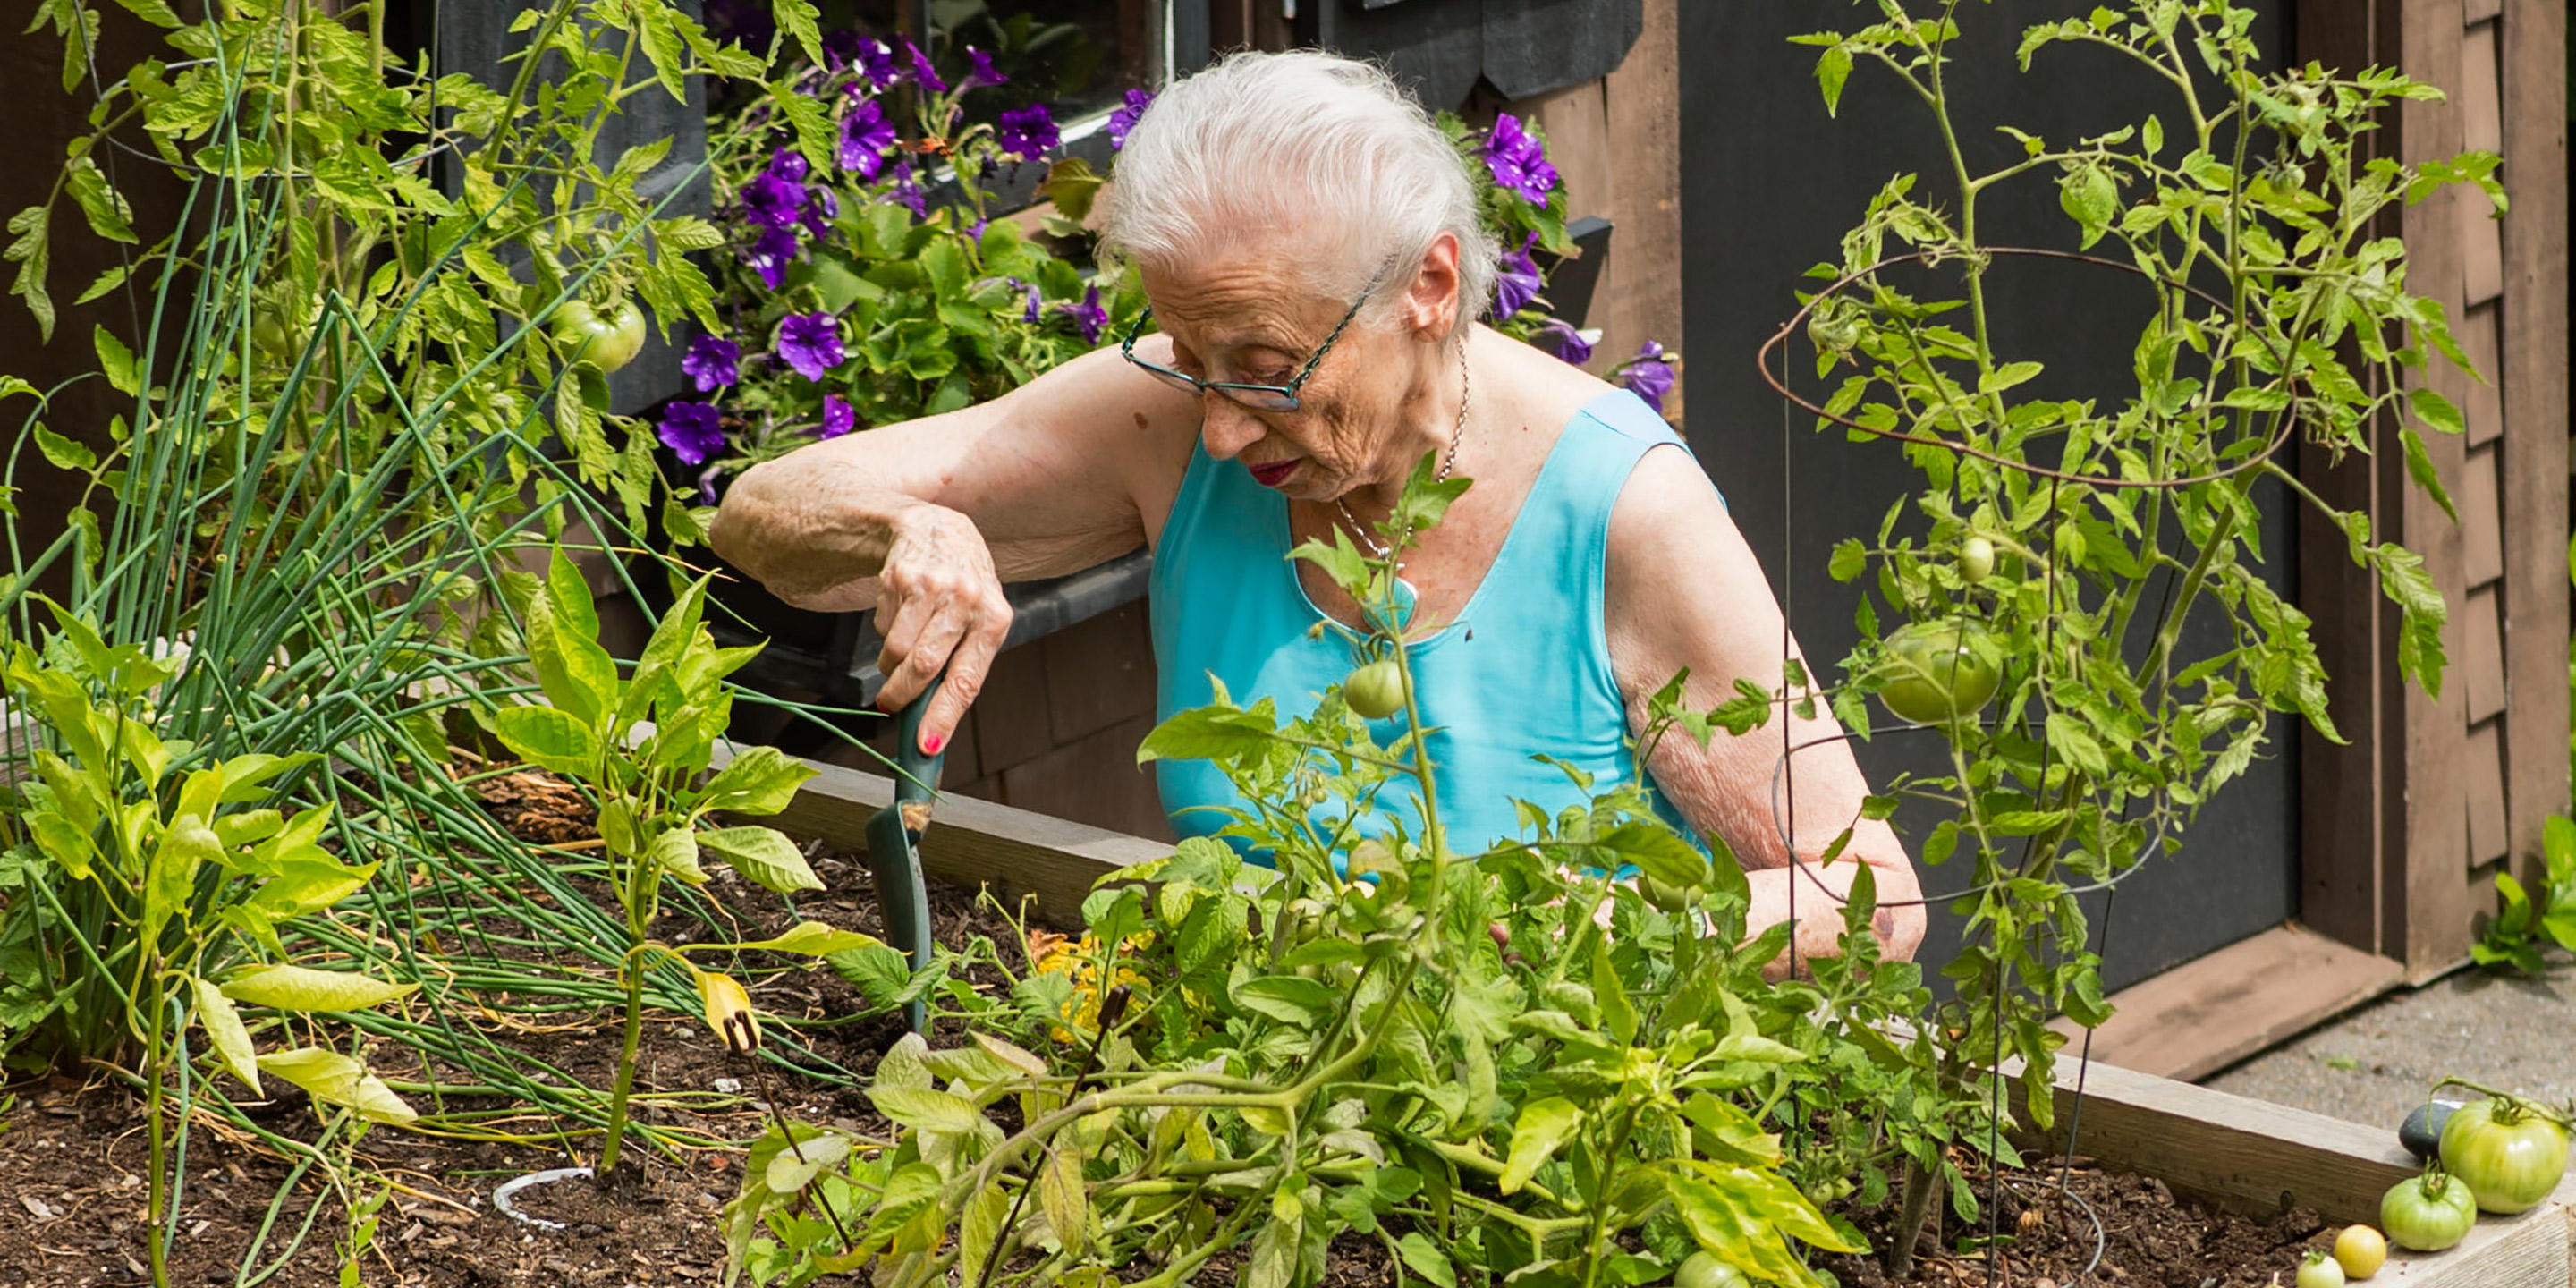 A female senior tends to her garden outside